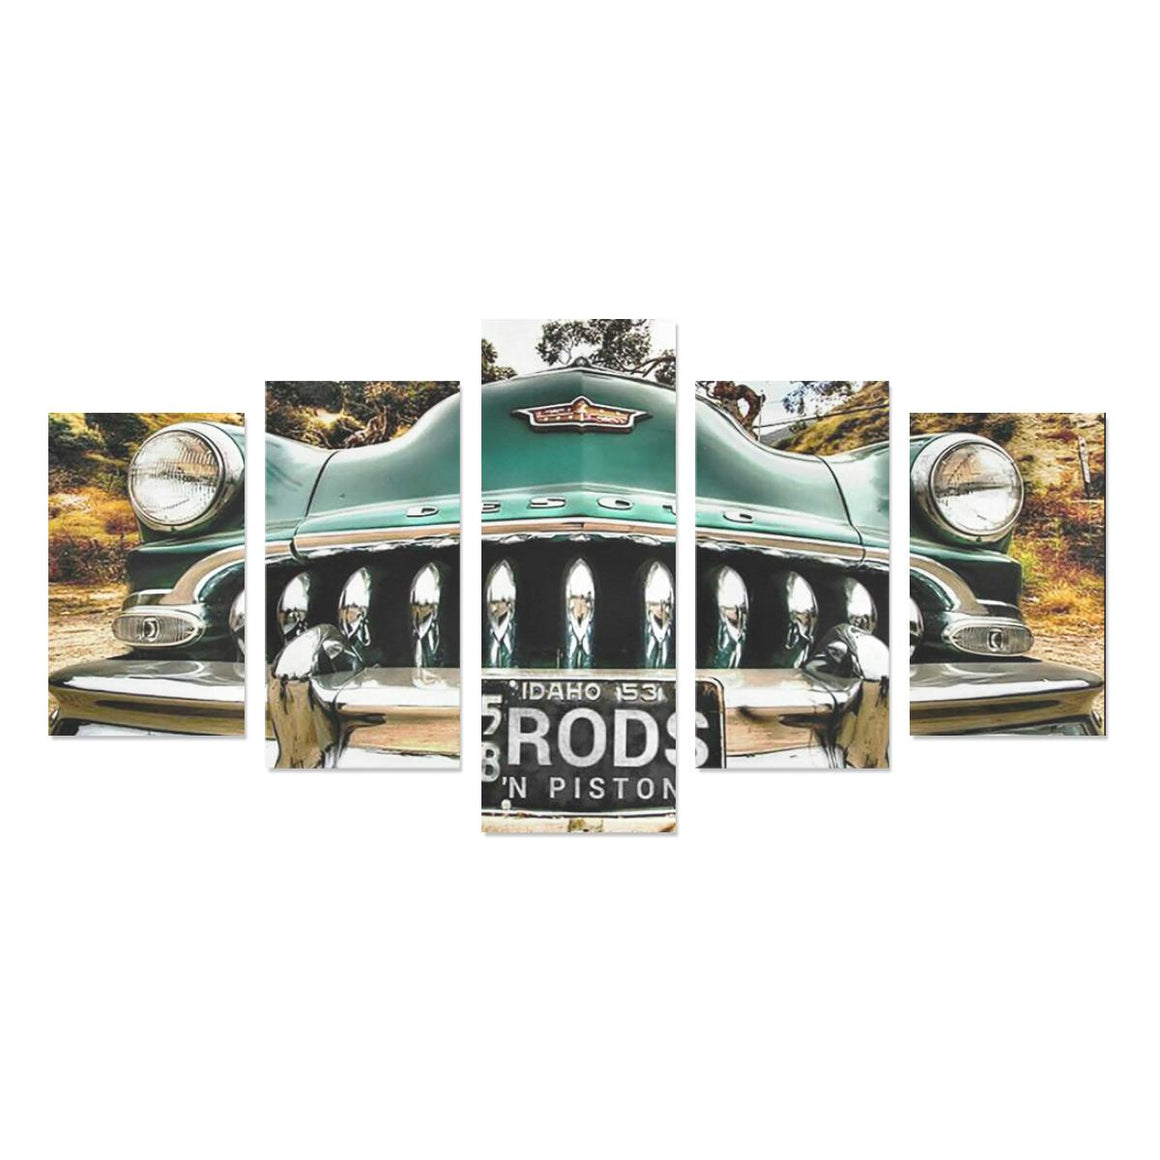 Desoto front end Canvas Print Sets (No Frame)